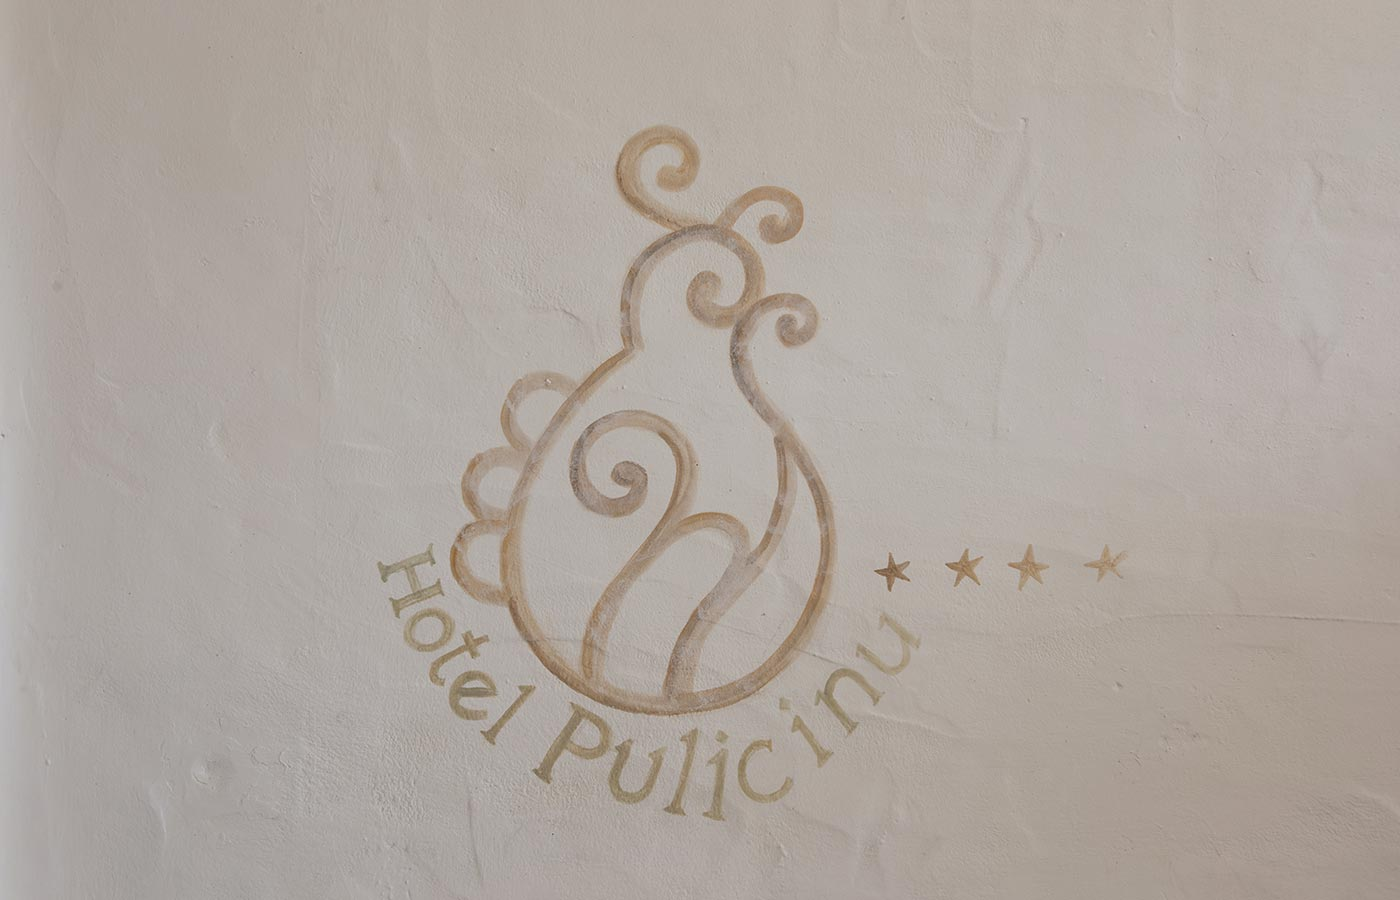 The logo of the Hotel Pulicinu in Baja Sardinia